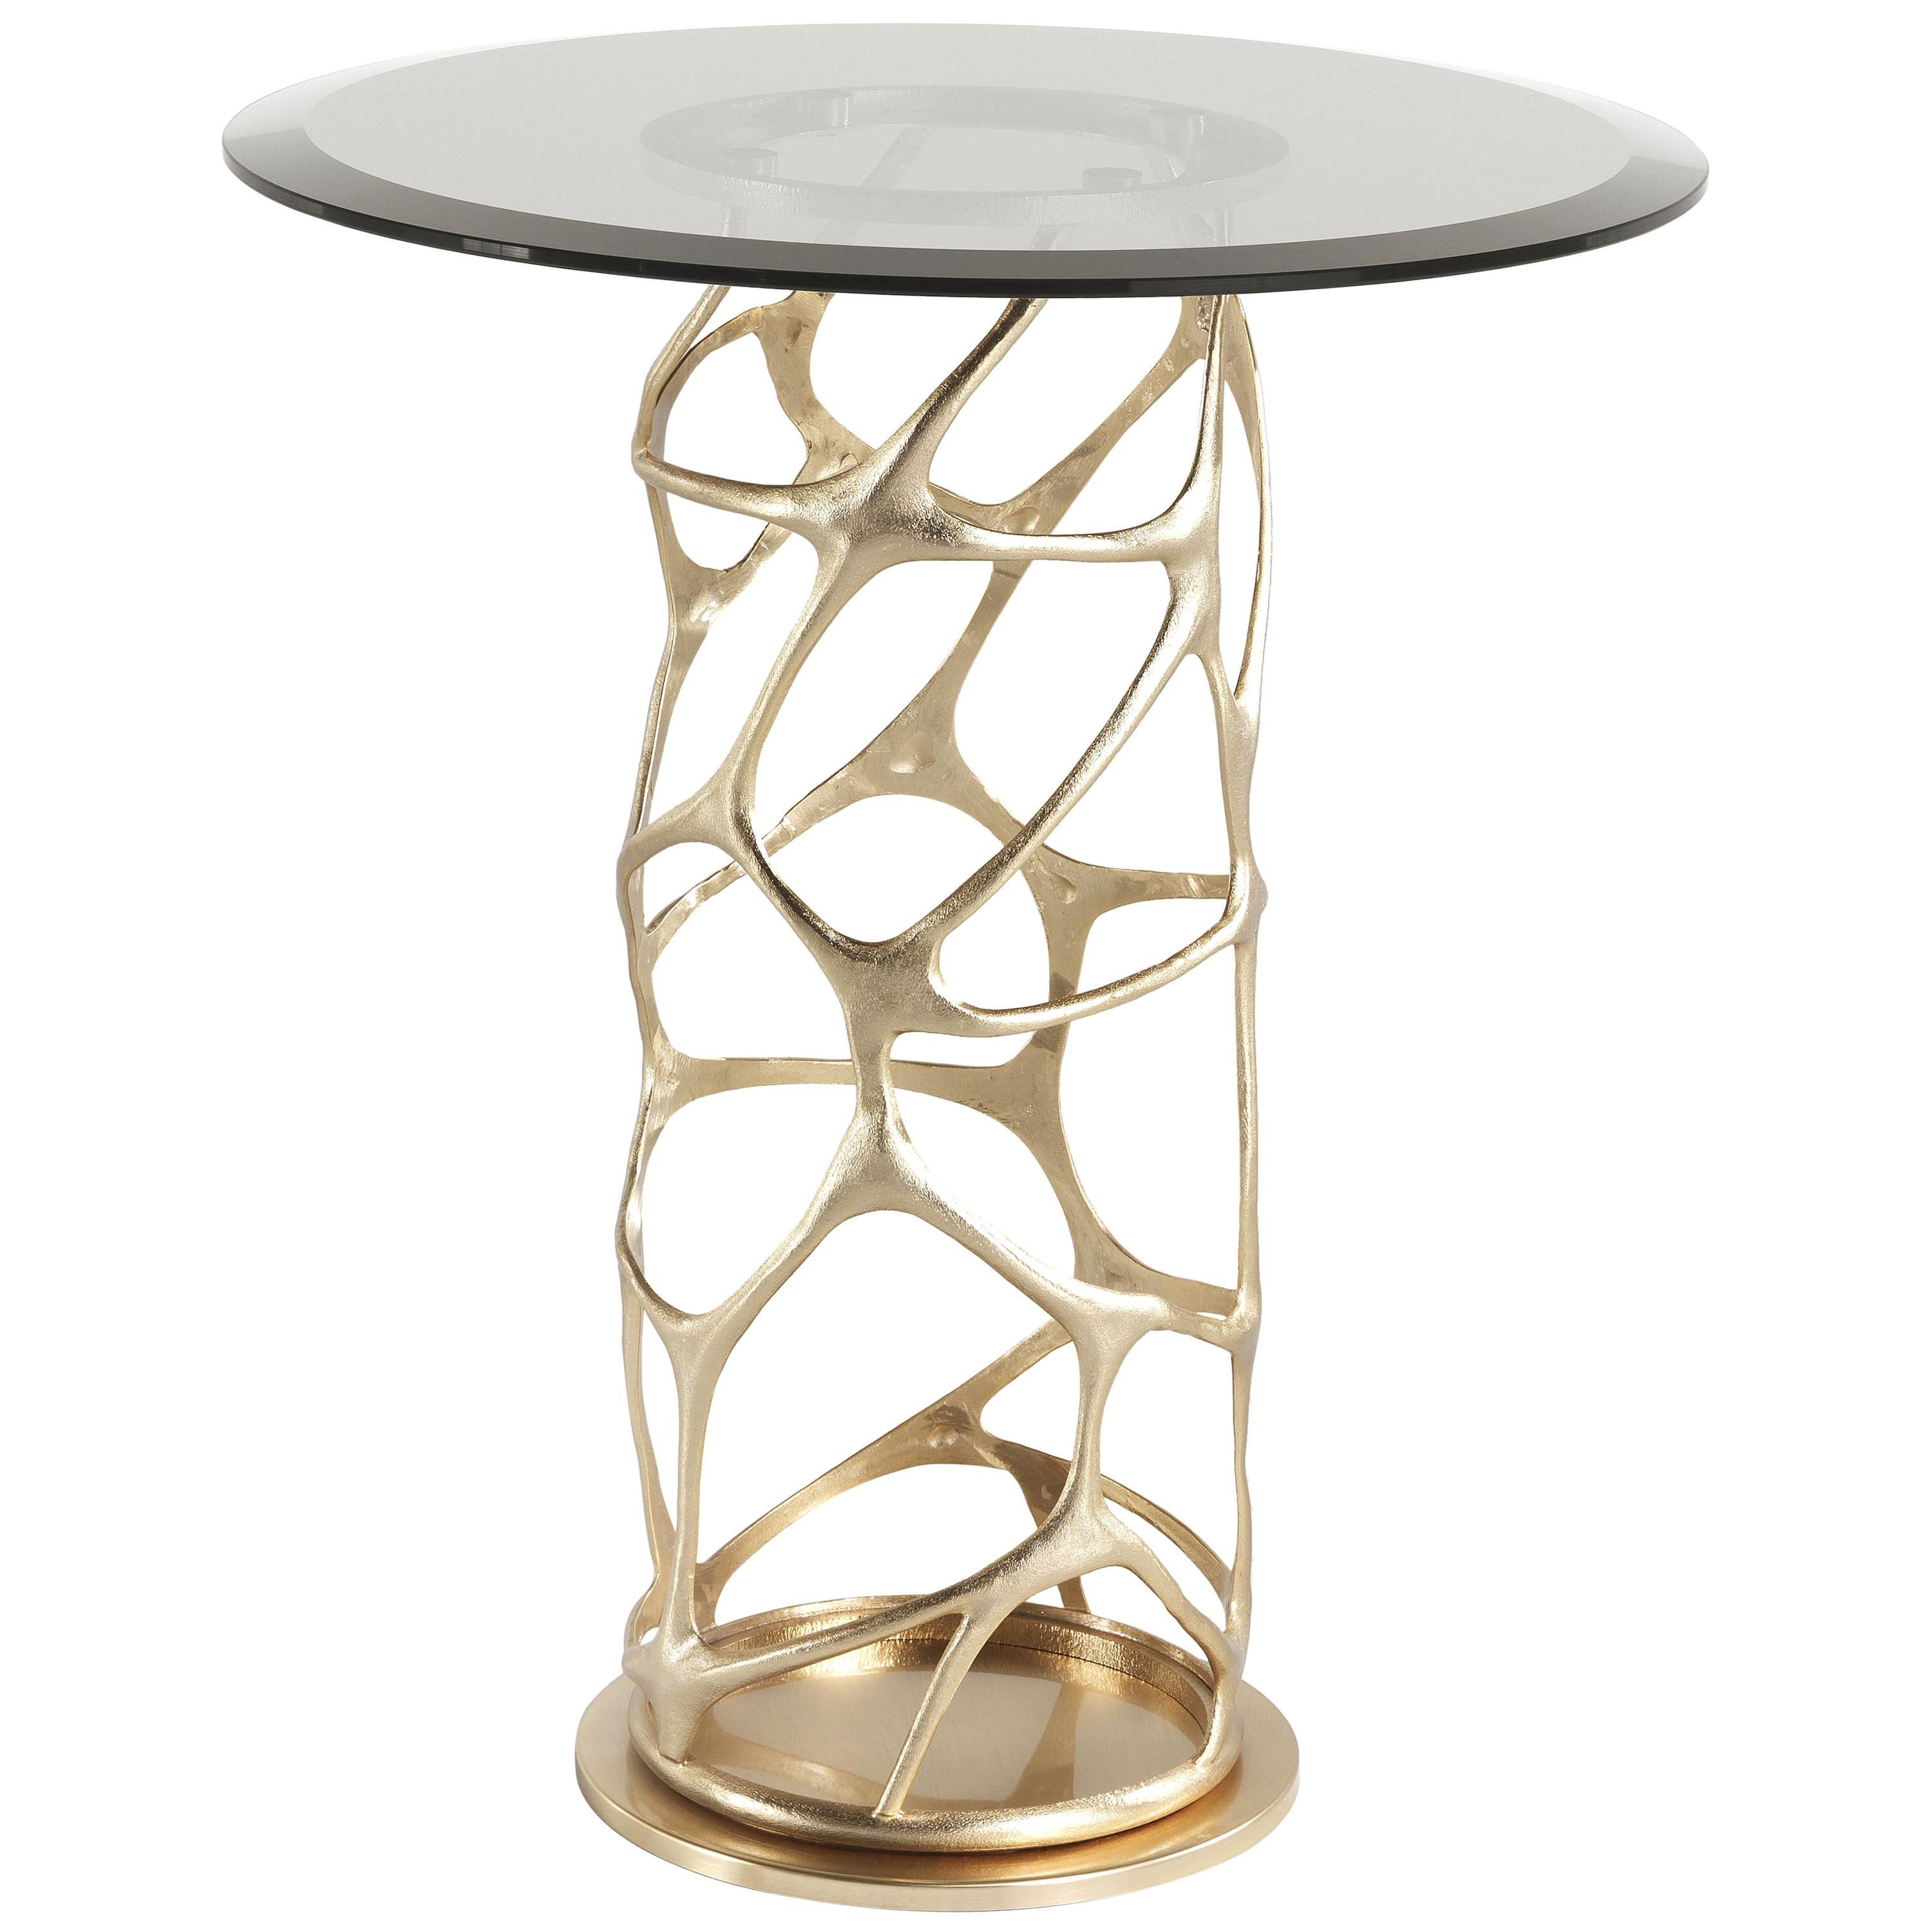 Sioraf Side Table with Metal Base by Roberto Cavalli Home Interiors